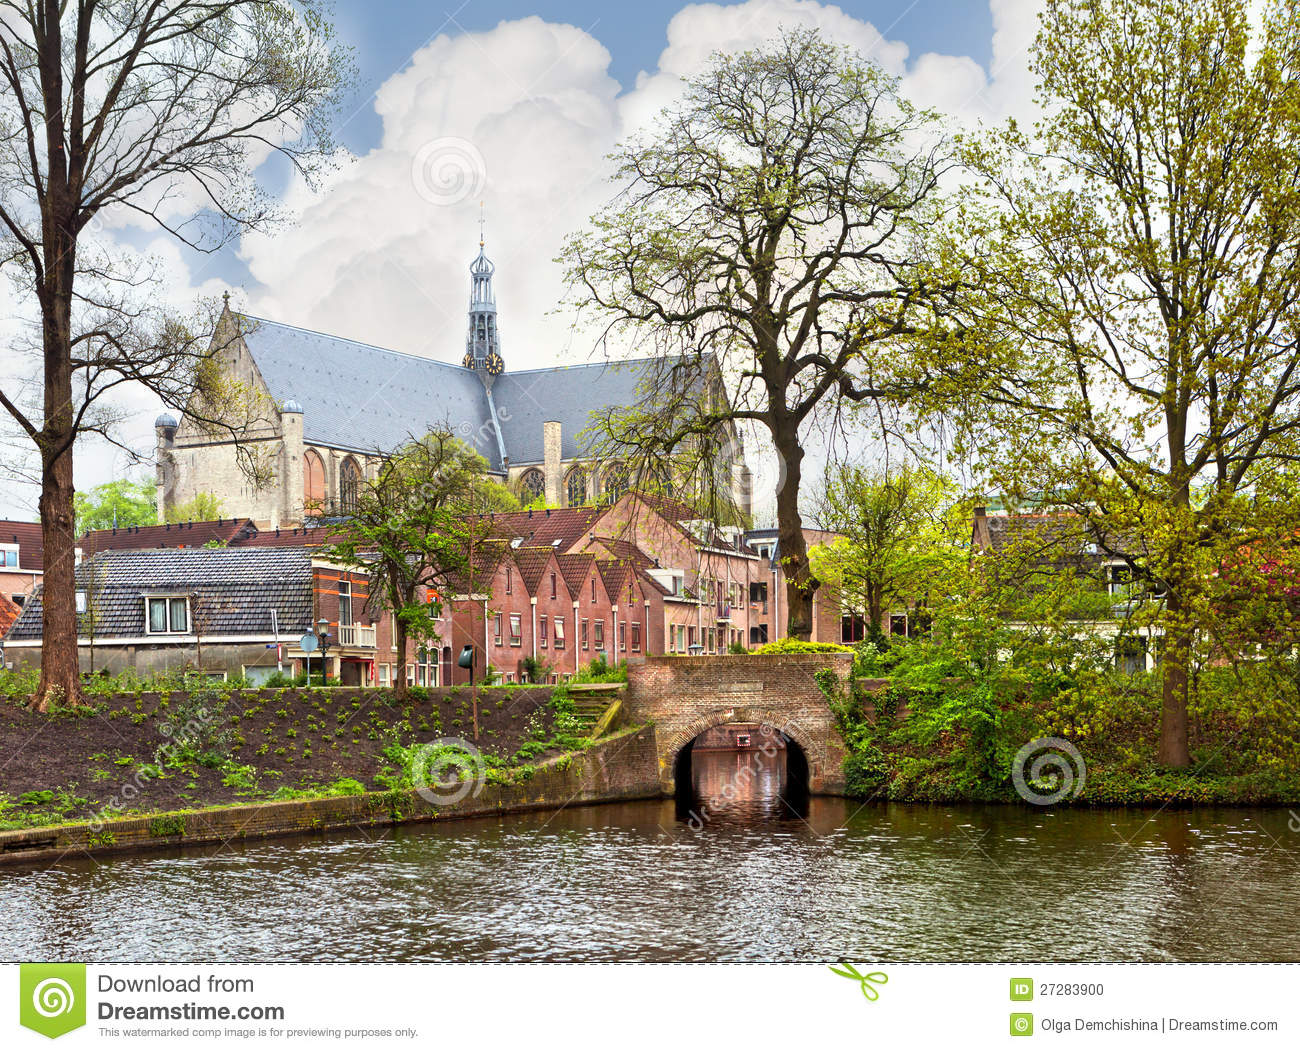 Alkmaar Netherlands  city photos gallery : Alkmaar, Netherlands Stock Photo Image: 27283900